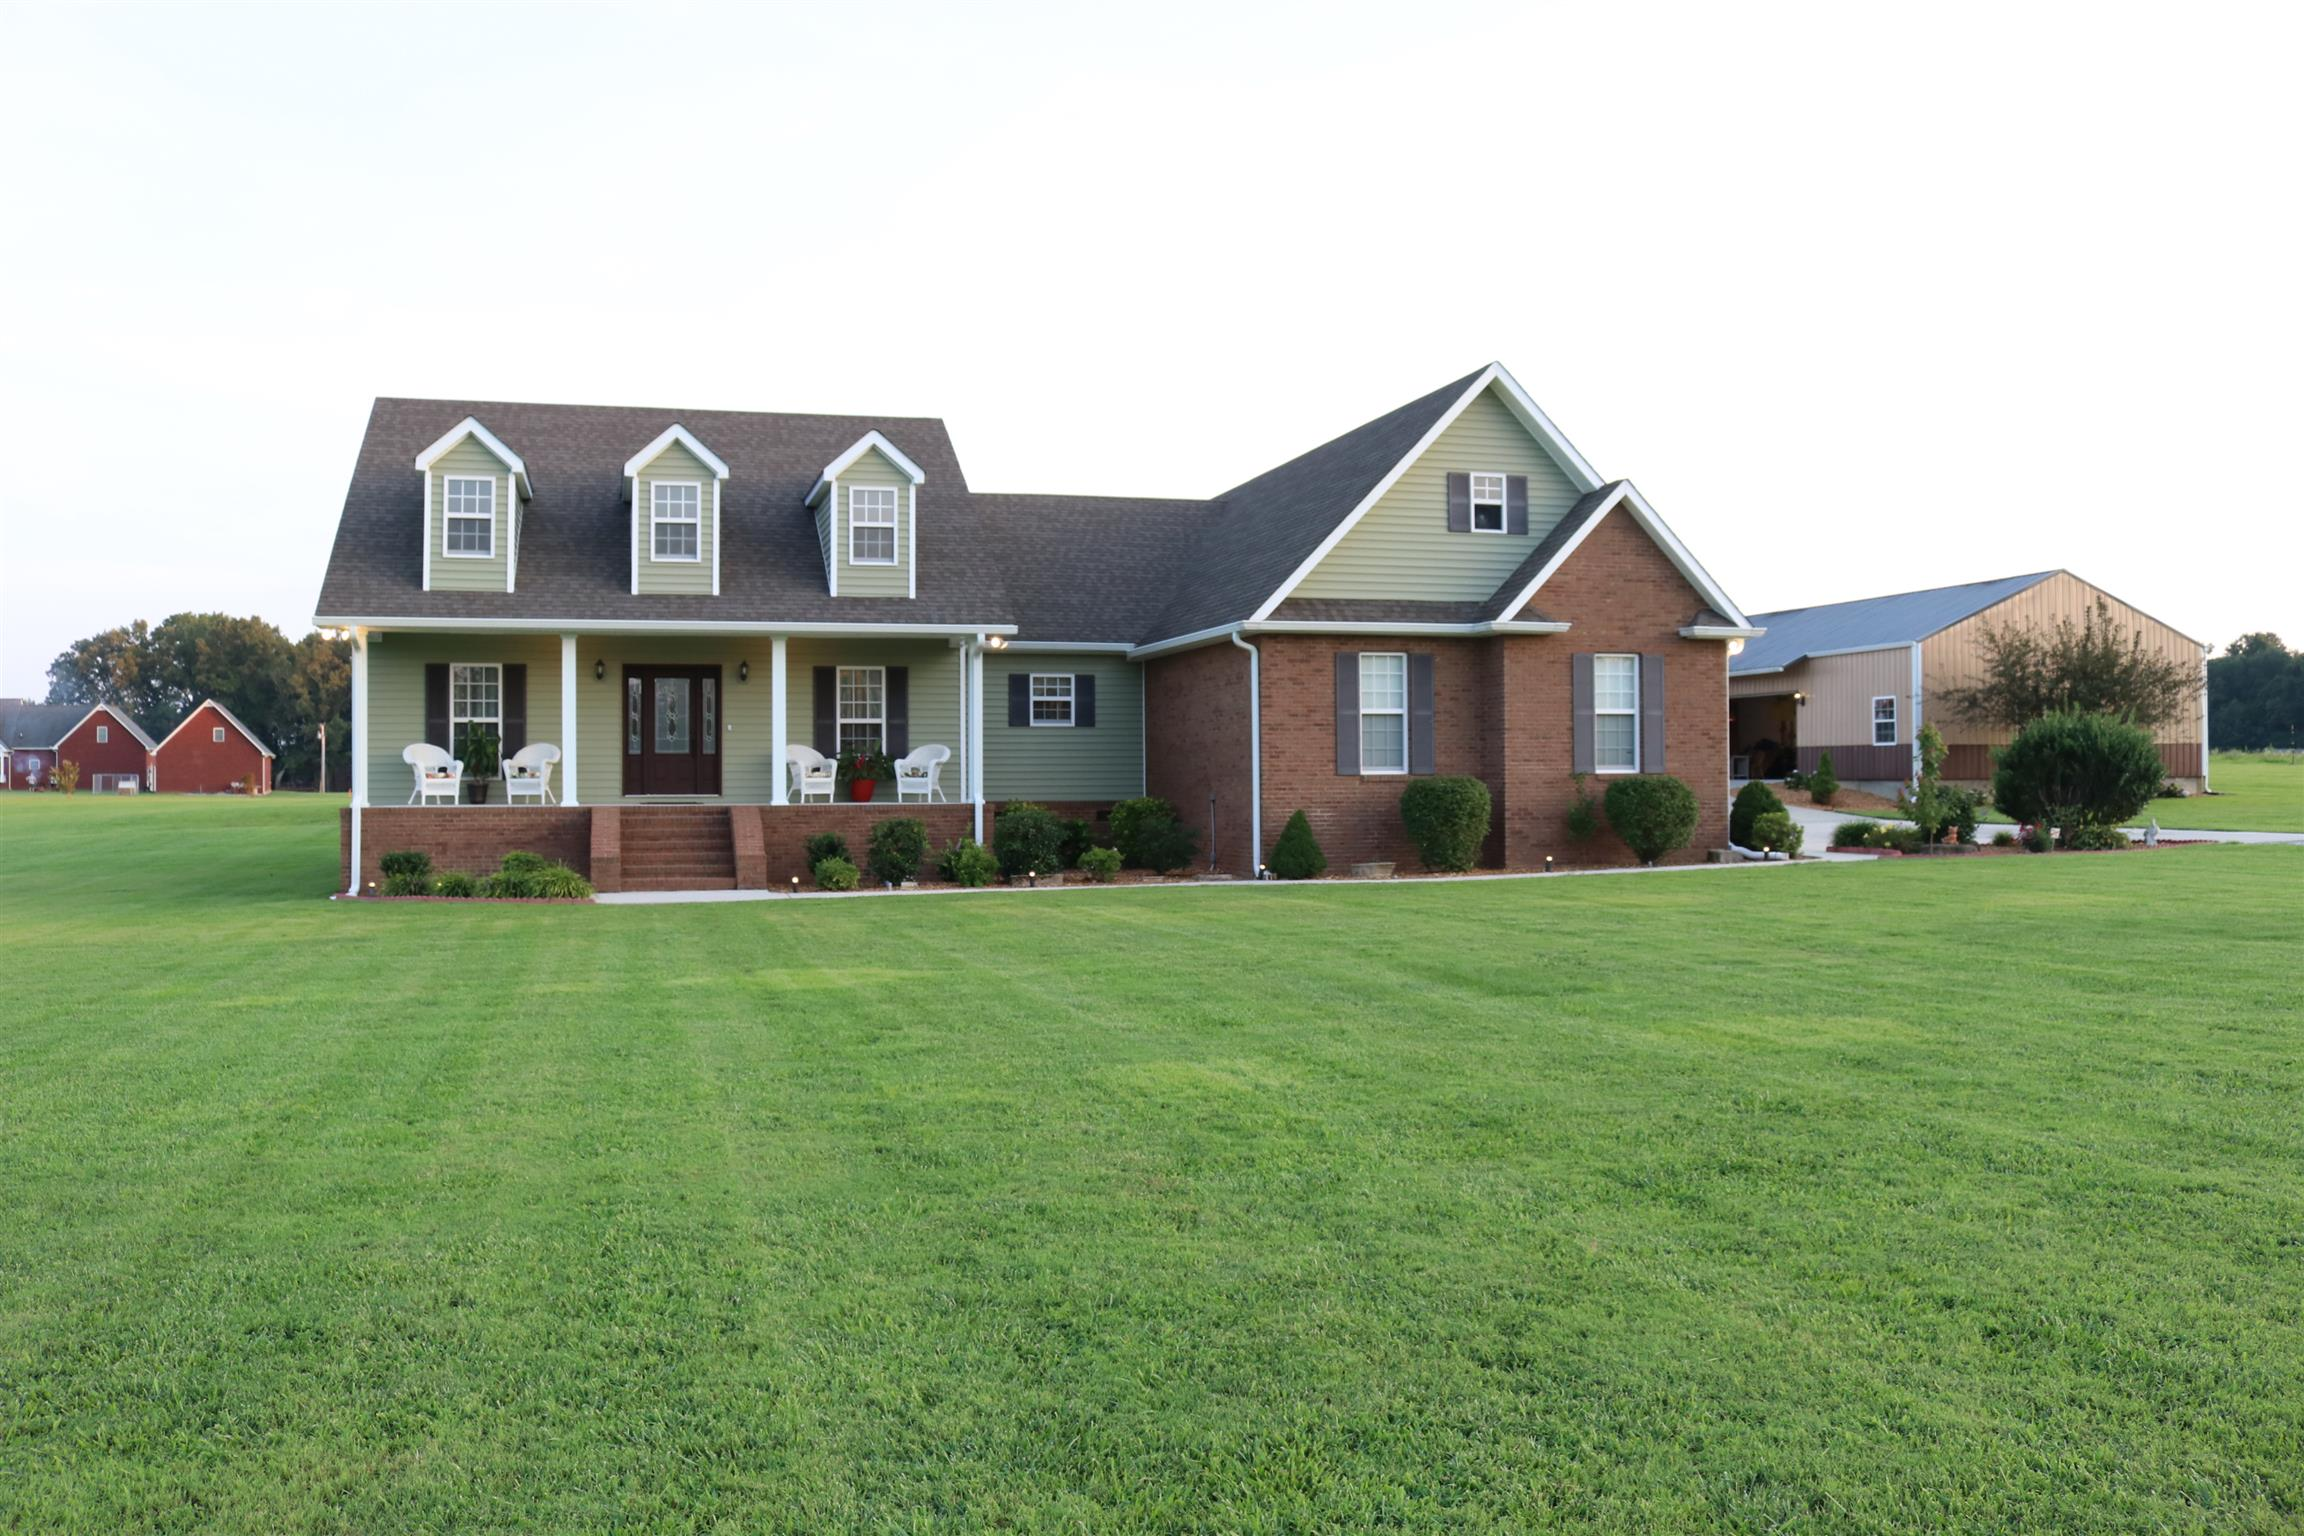 3053 Rock Creek Rd, Estill Springs, TN 37330 - Estill Springs, TN real estate listing